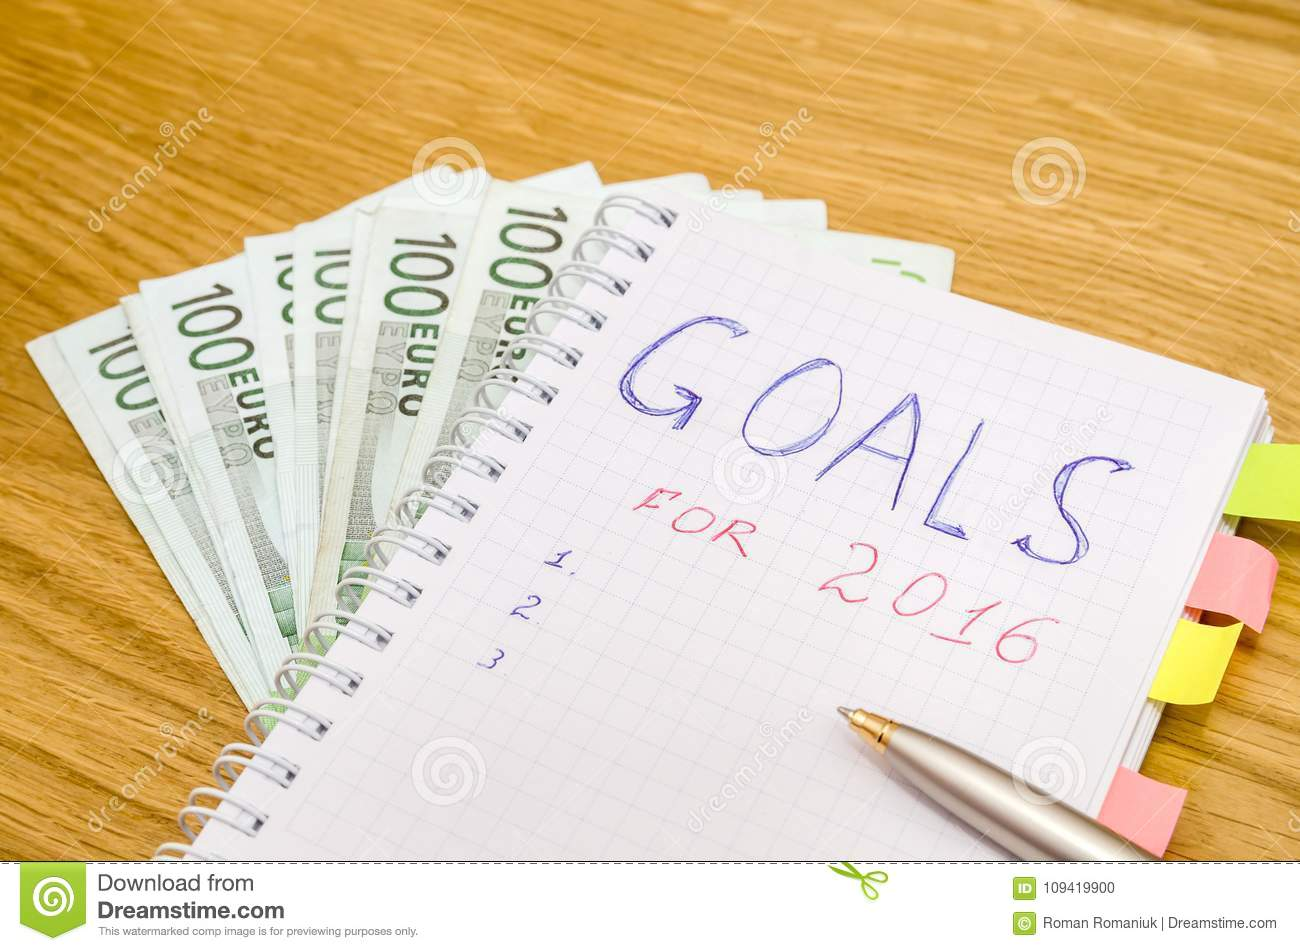 goals of year 2016 write on notebook with pen and euro